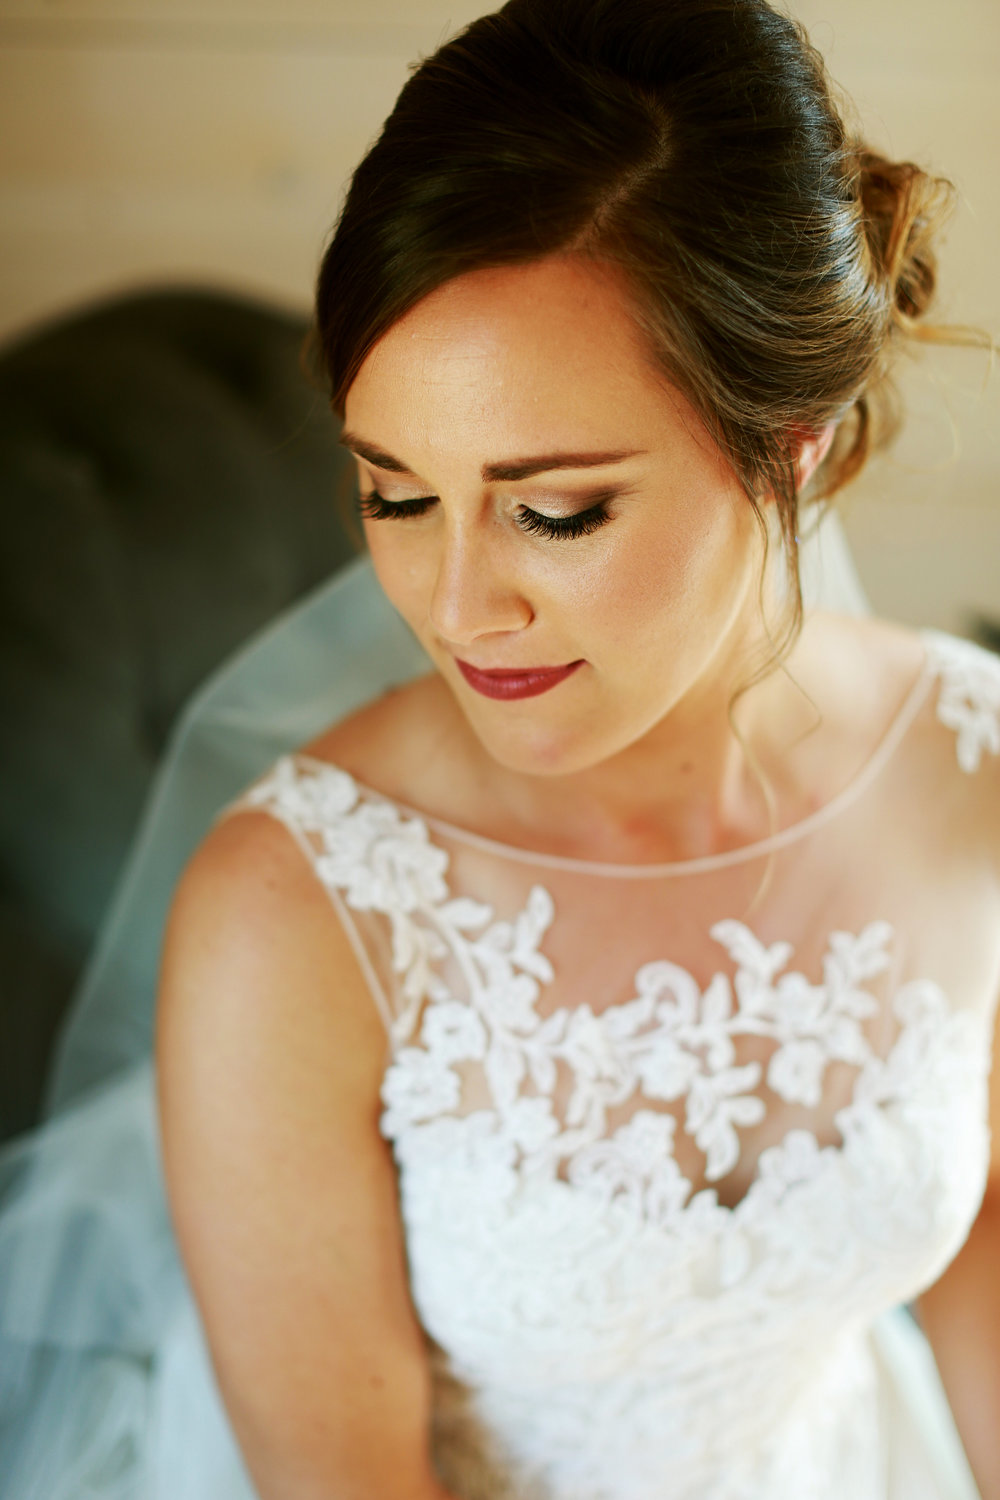 Jenna Kevin Wedding | Sixpence Events day of coordinating | Hannah Schmitt Photography | Legacy Hill Farm | bridal beauty shot | lace sheer top with low bun and perfect gold smoky eye